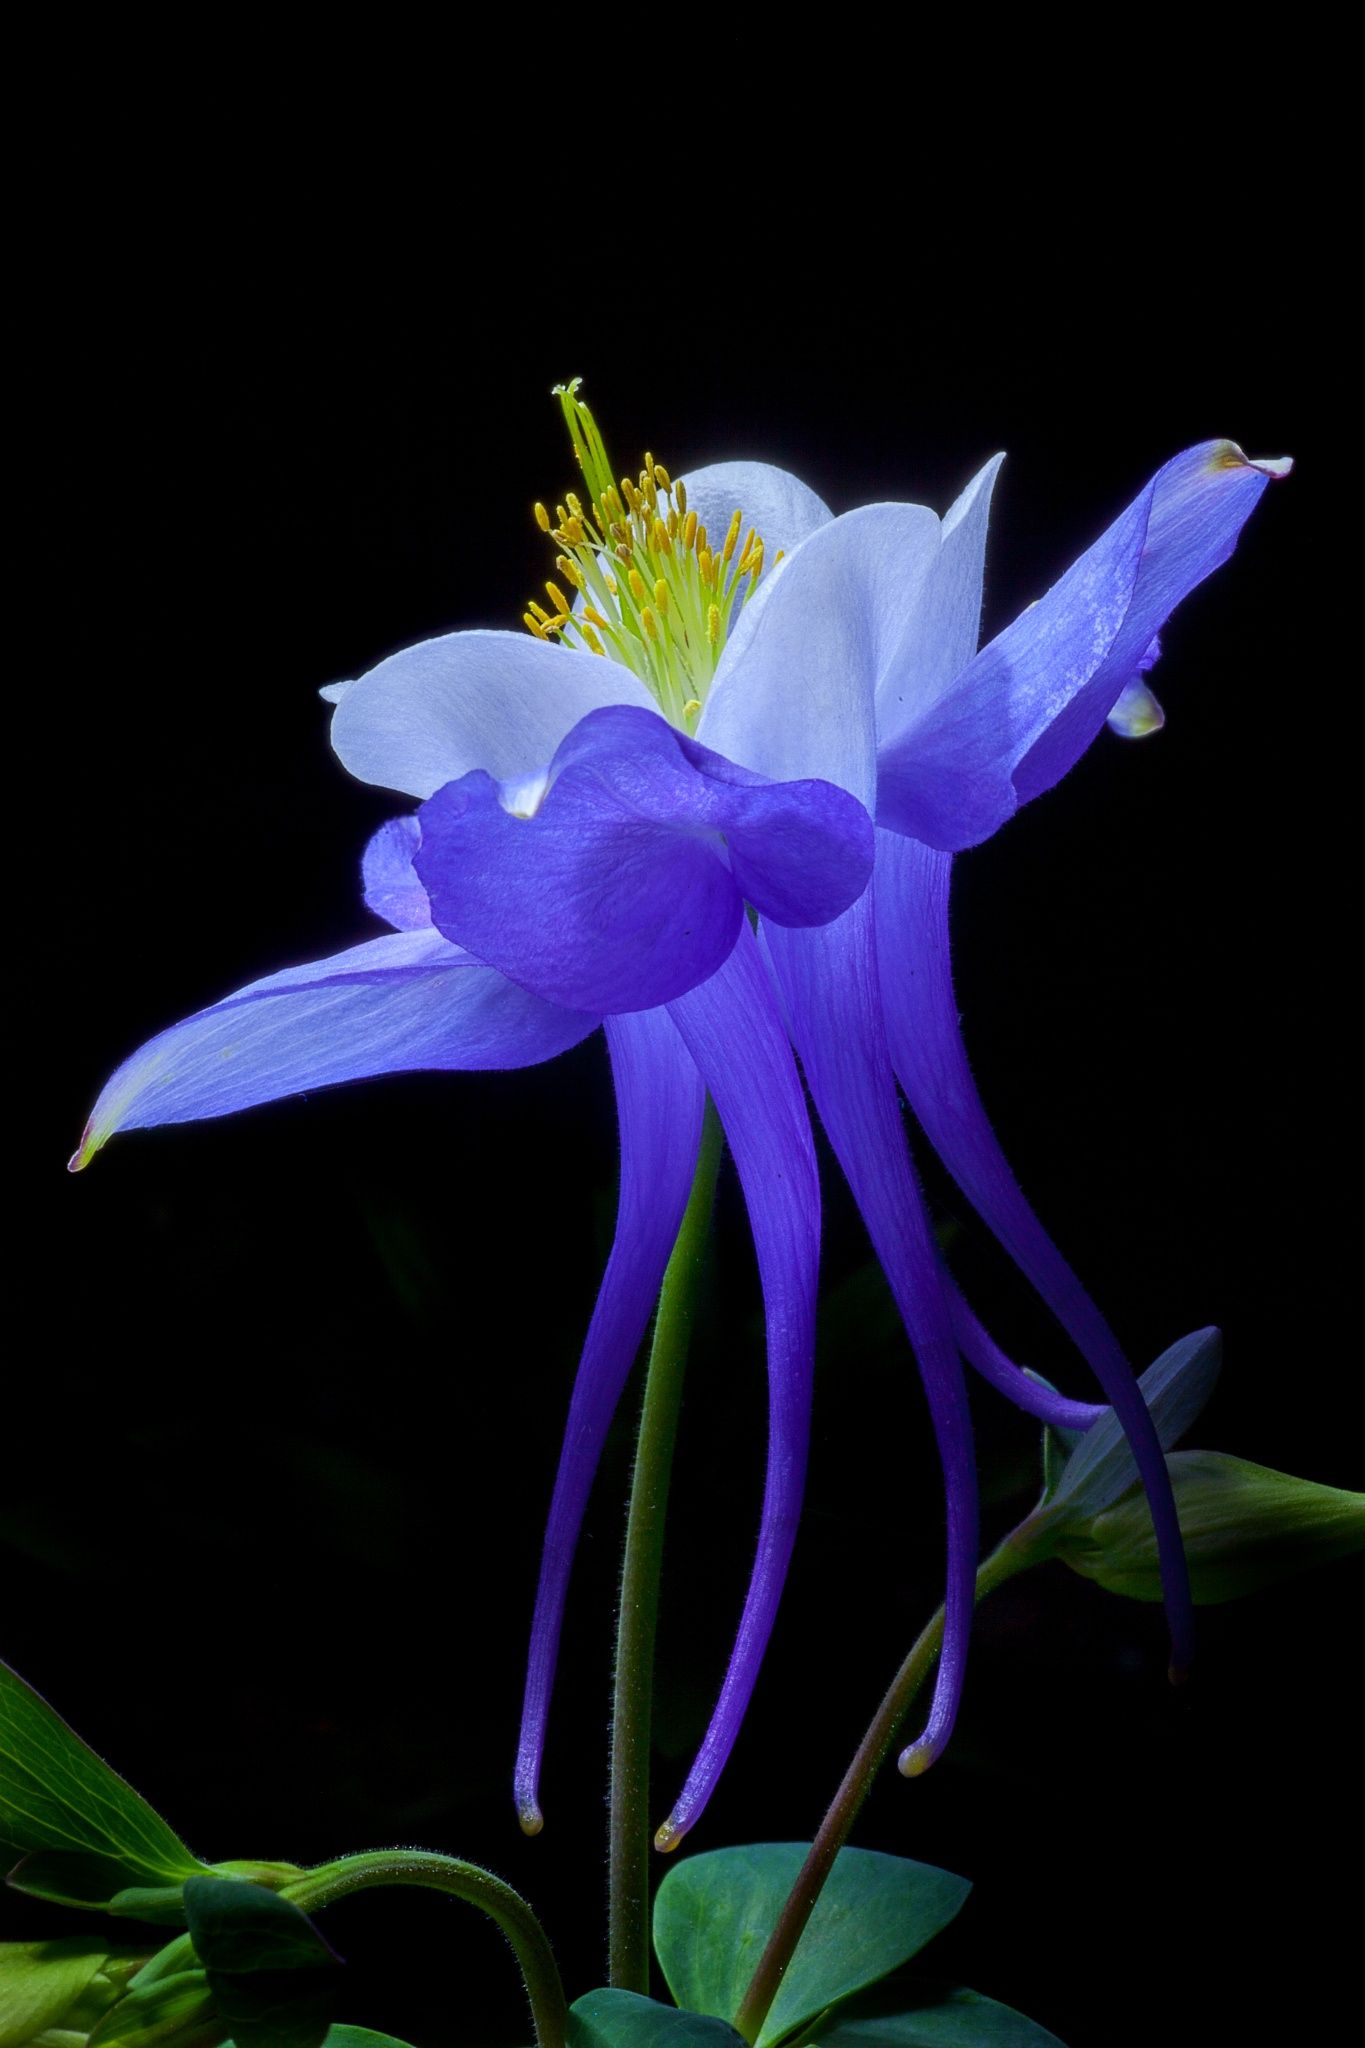 Blue aquilegia blue aquilegia flower in my back yard special blue aquilegia blue aquilegia flower in my back yard izmirmasajfo